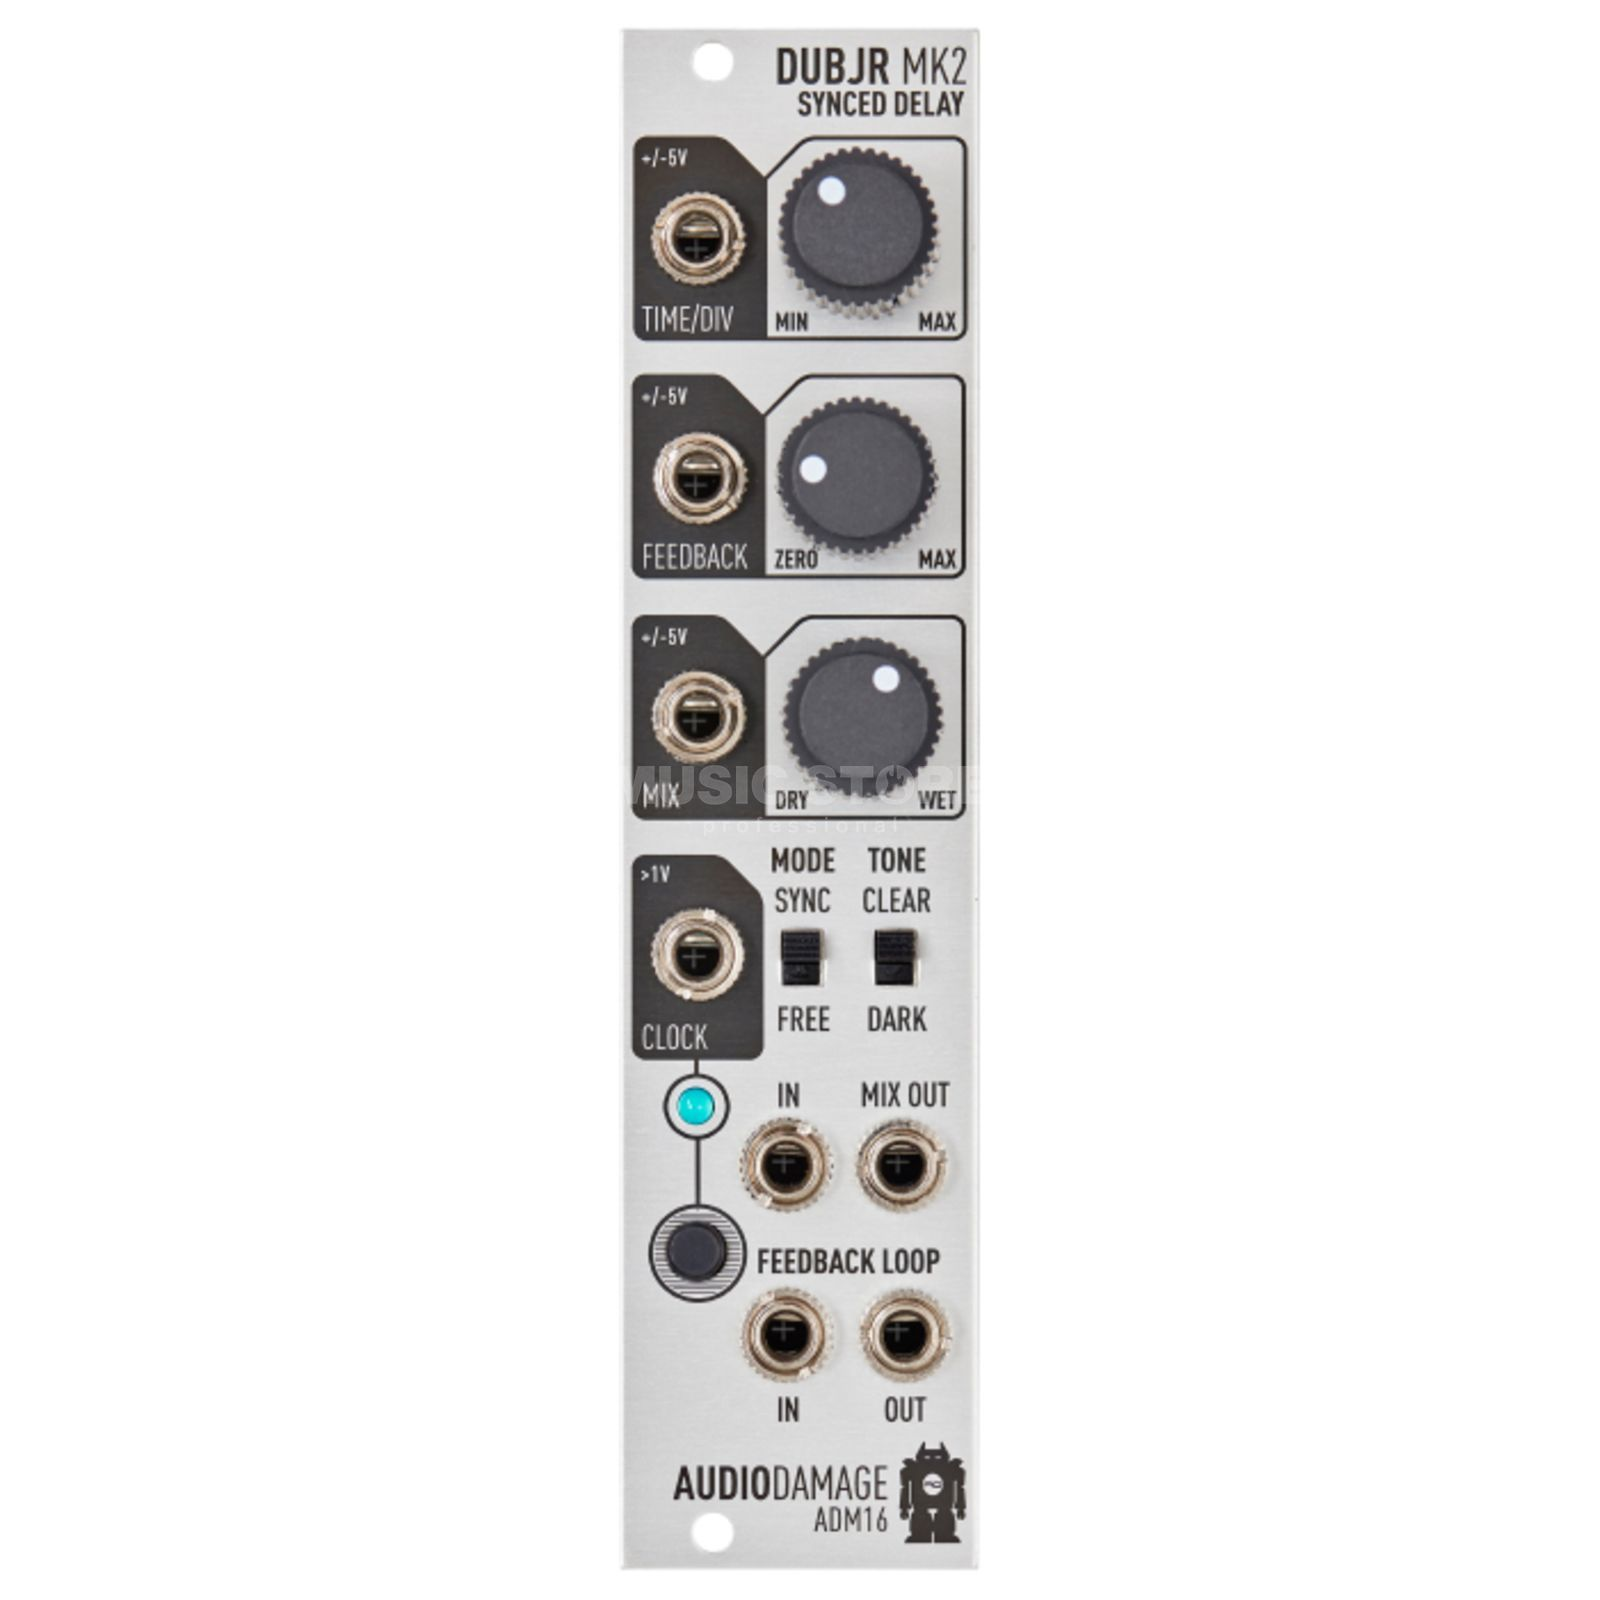 Audio Damage ADM16 Dub Jr. MKII Clock Synced Delay Product Image